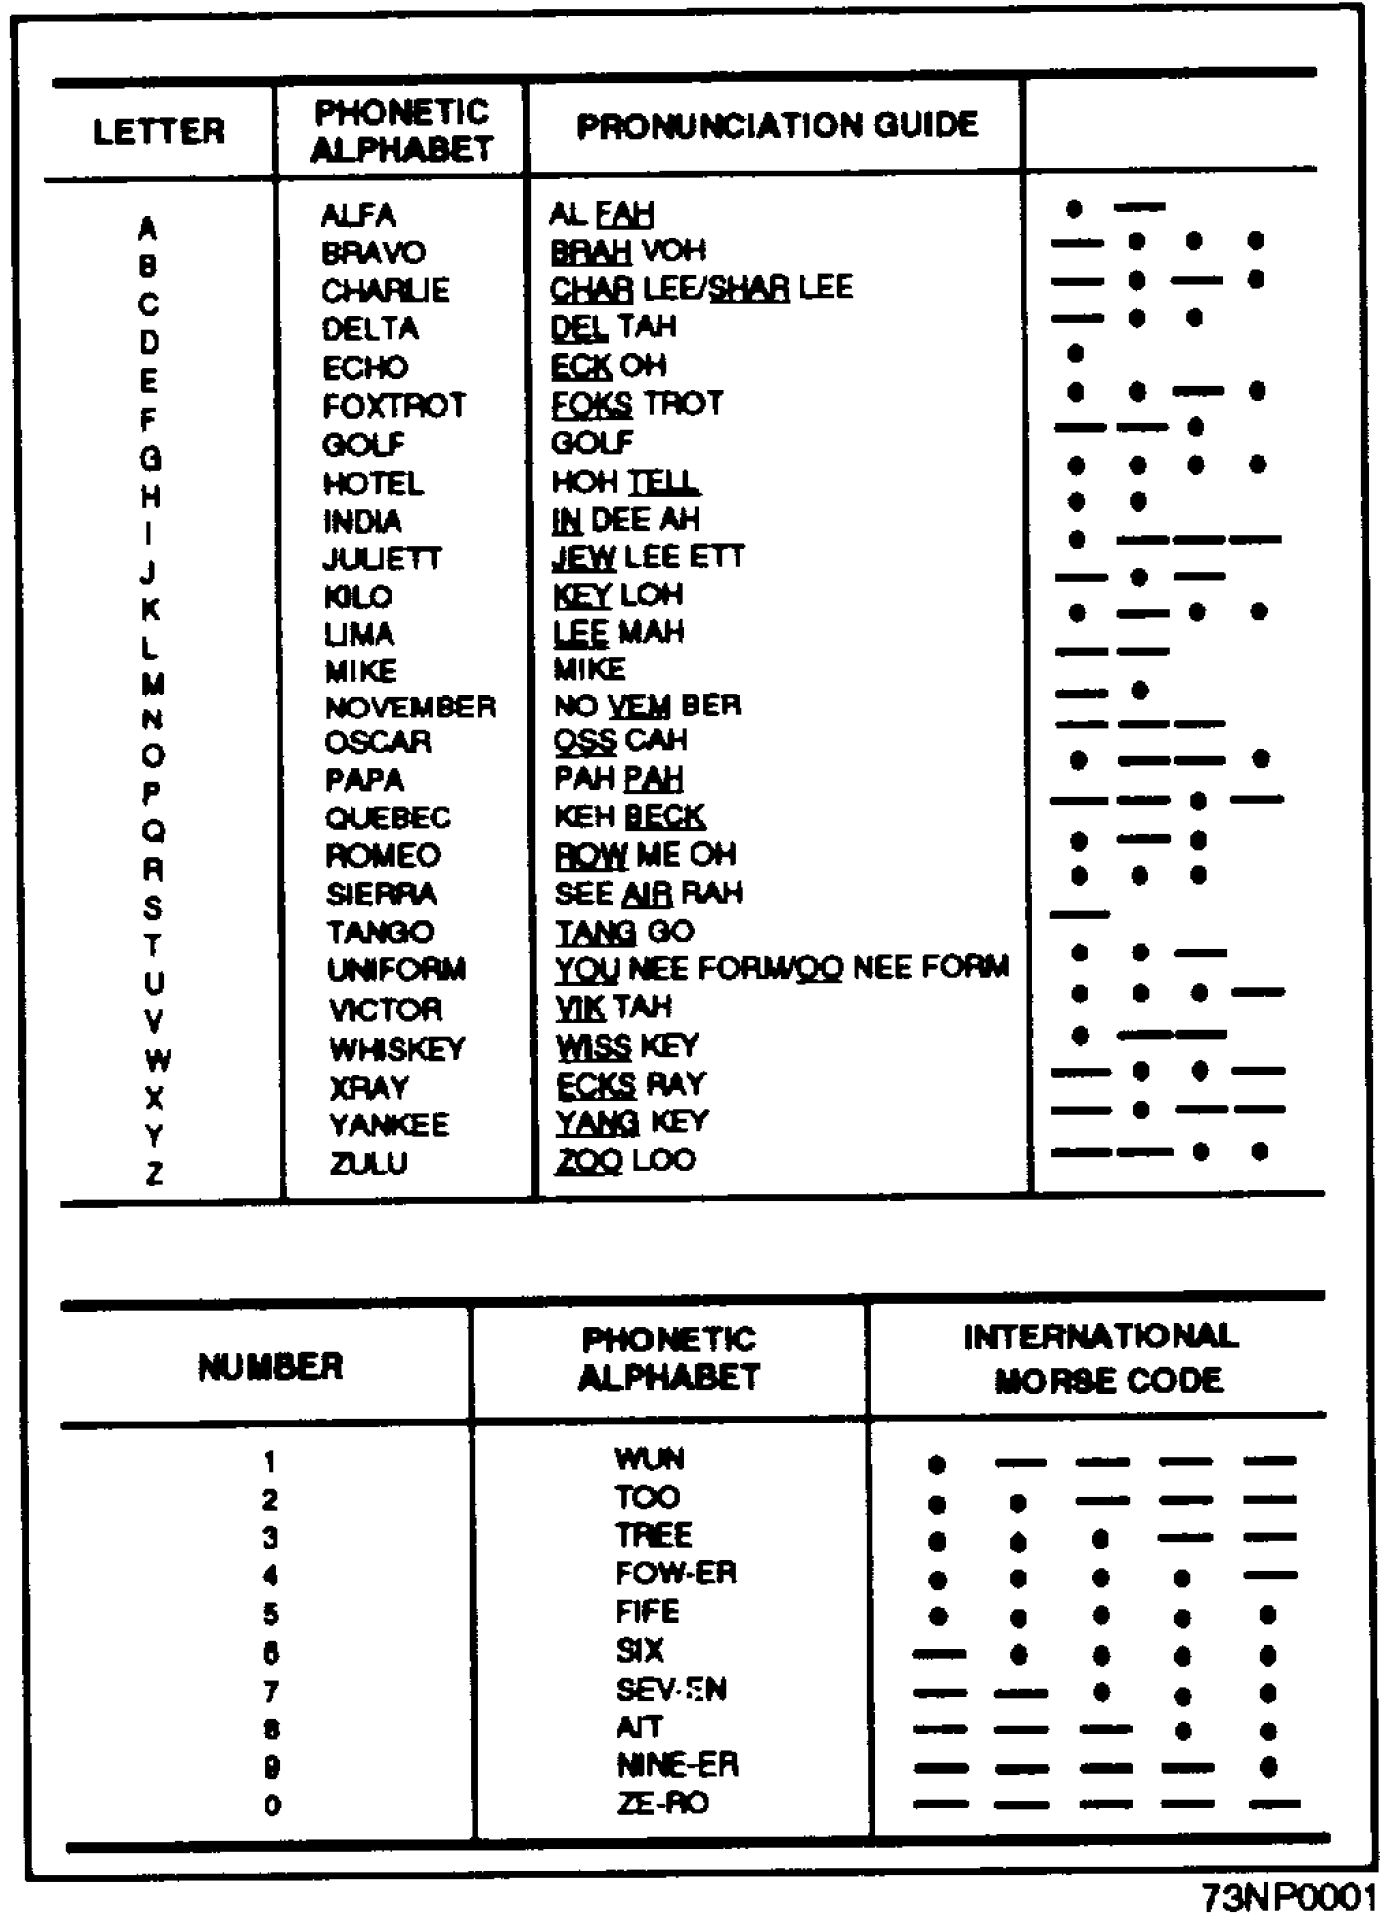 Allied Military Phonetic Spelling Alphabets